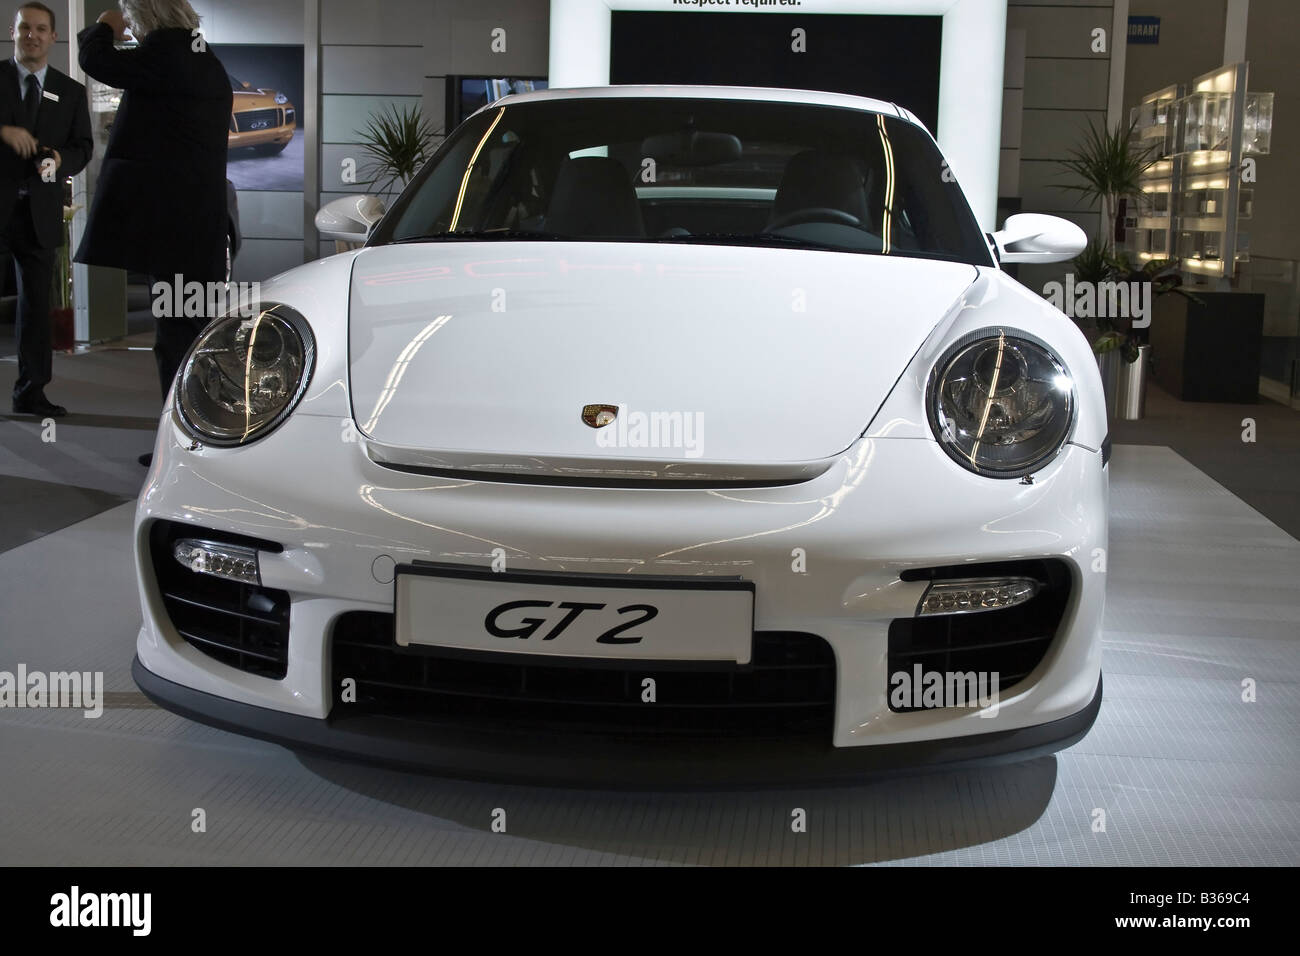 Porsche 911 GT2 at Zagreb Auto Show in Croatia from 28.3. 2008. -  06. 04. 2008. - Stock Image